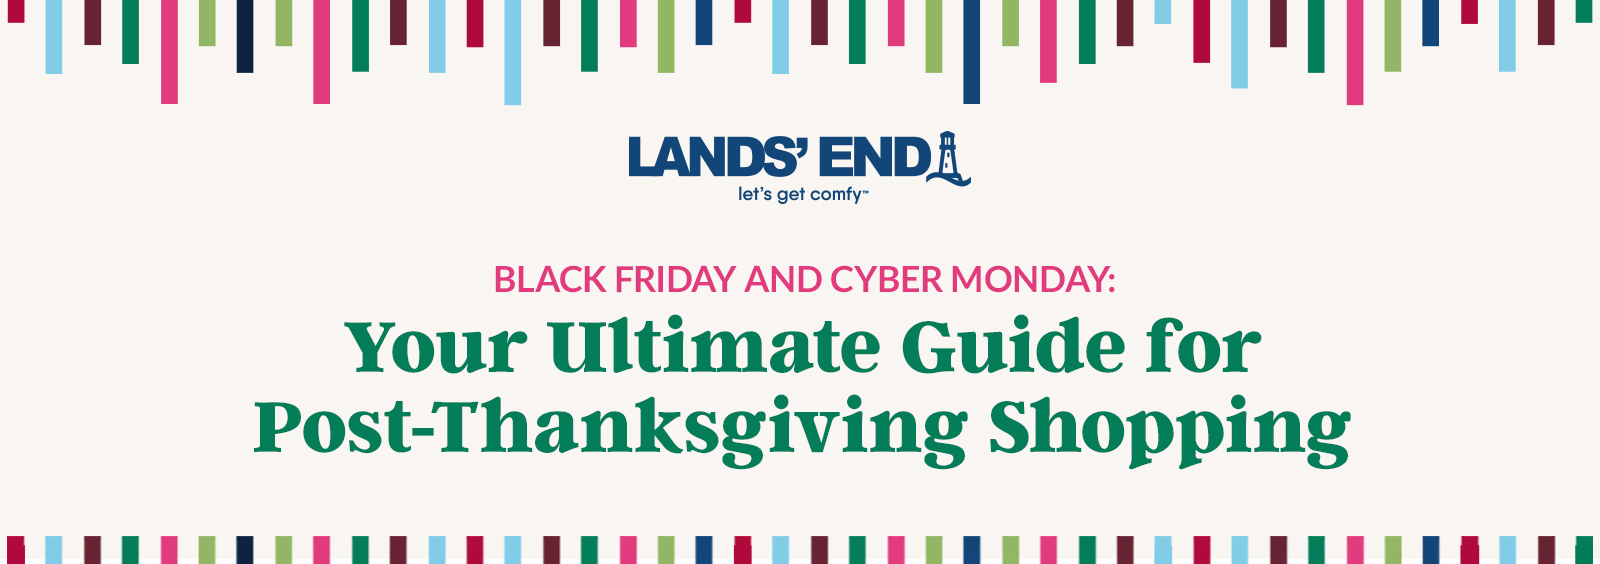 Black Friday and Cyber Monday: Your Ultimate Guide for Post-Thanksgiving Shopping